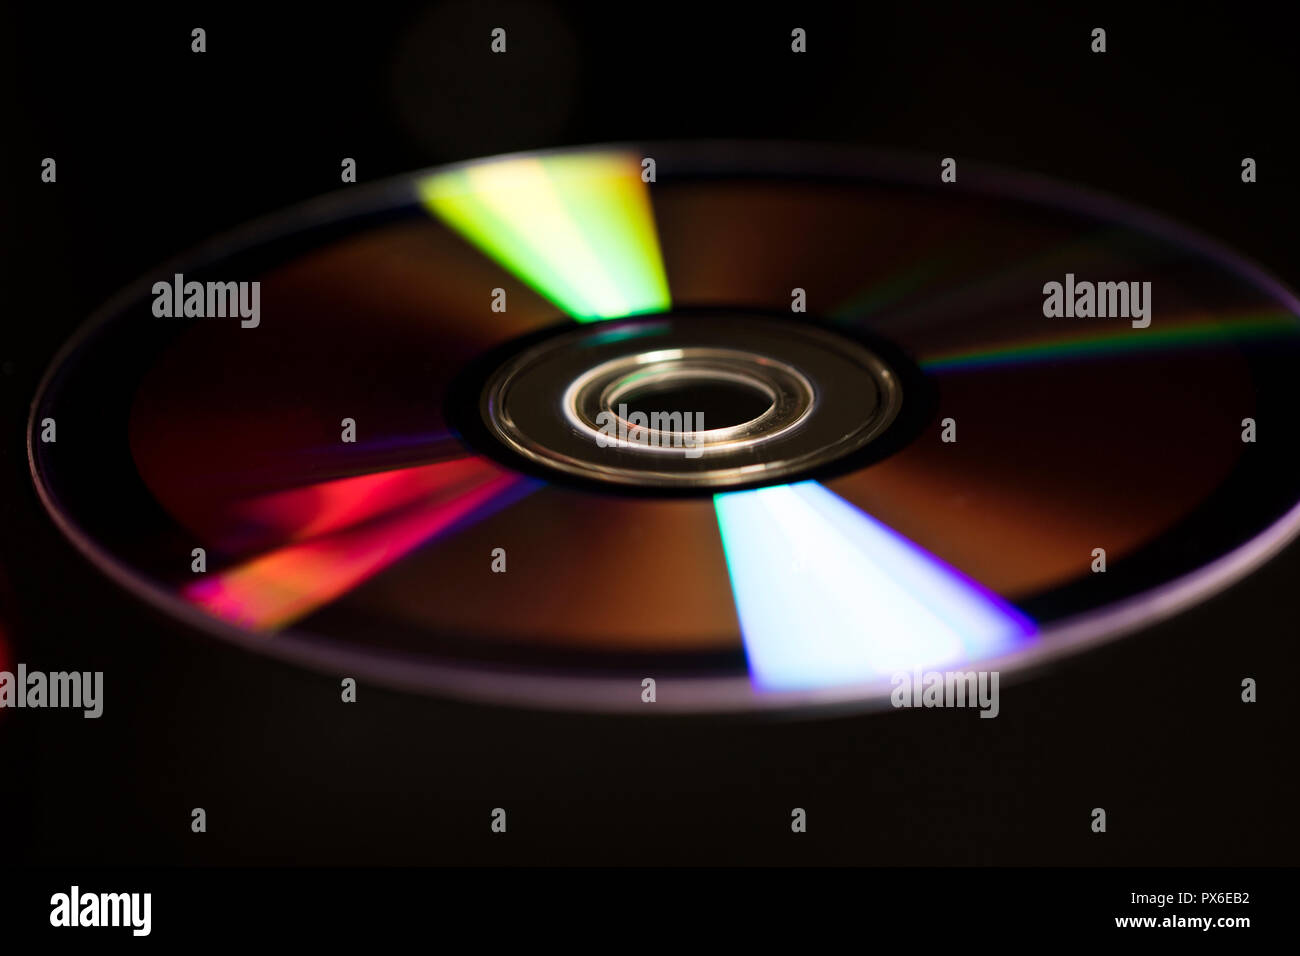 How do I close a disc